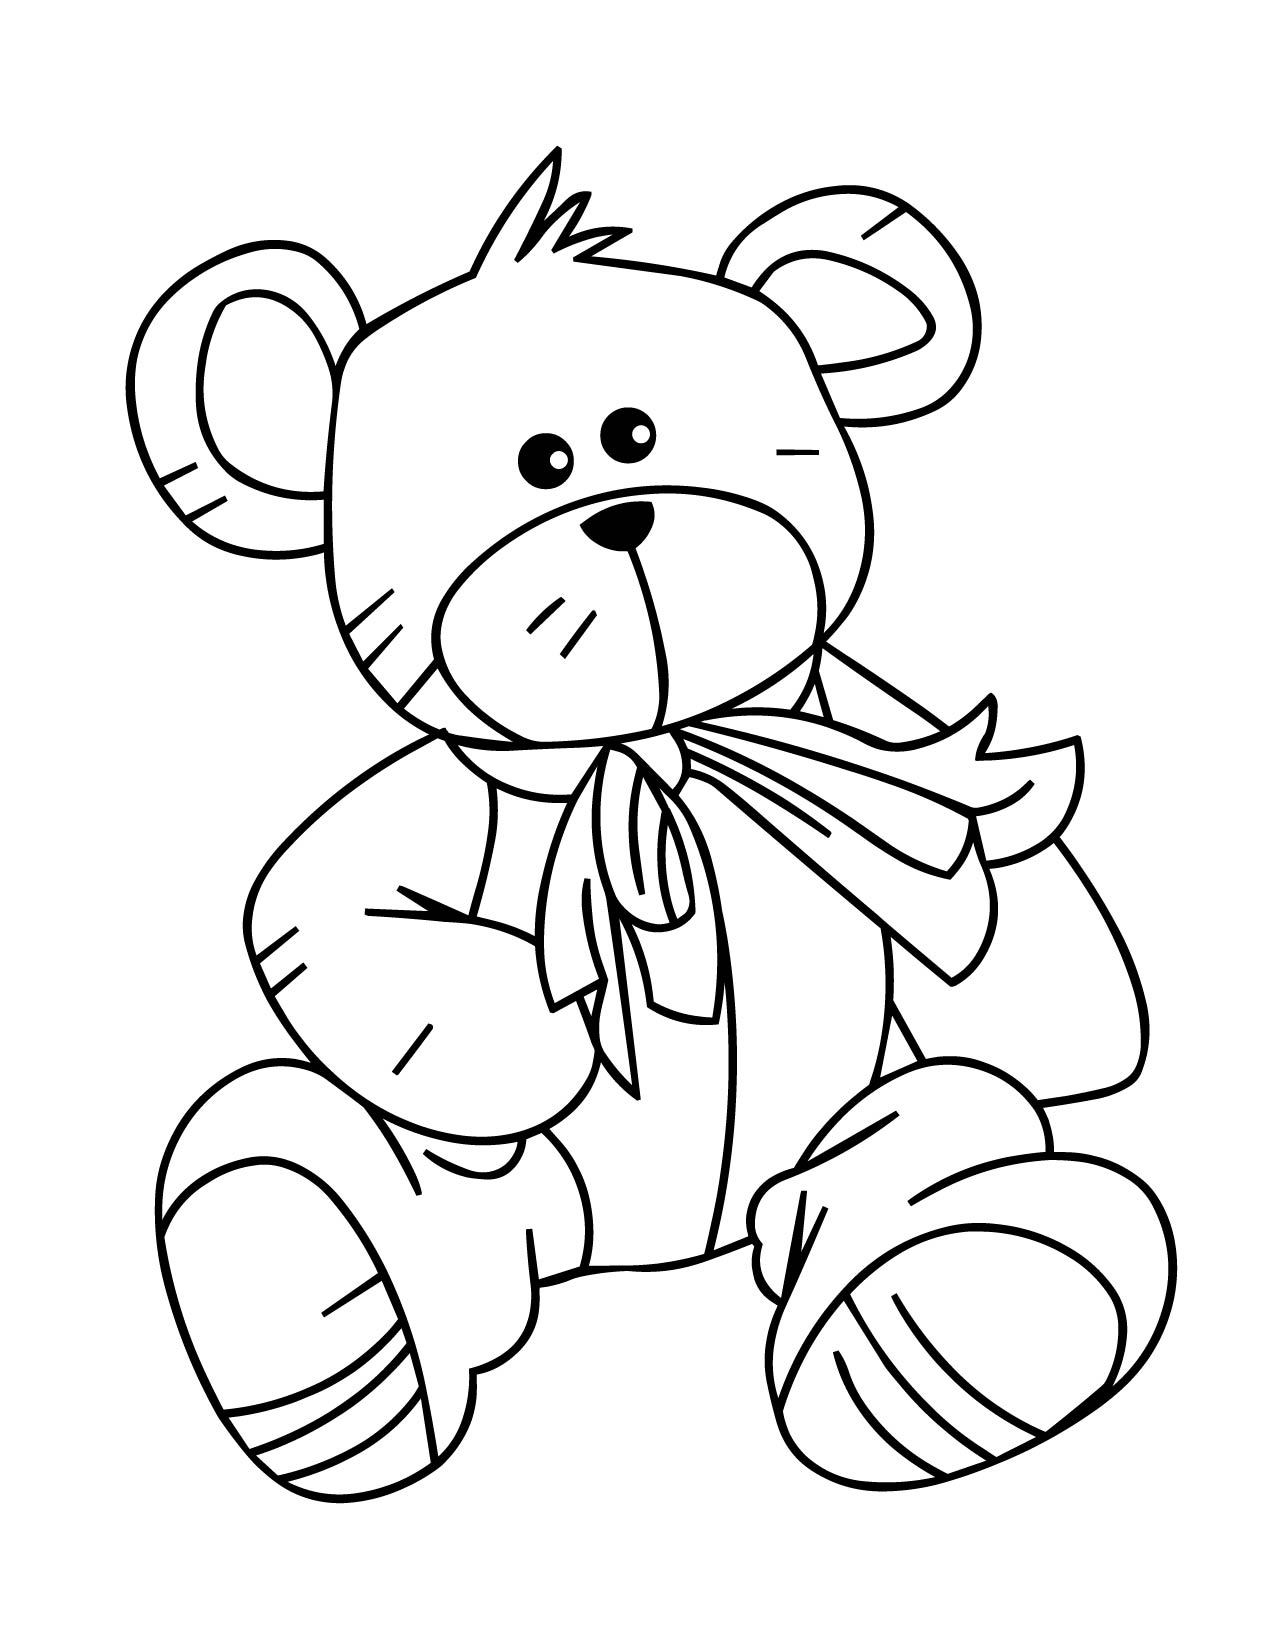 coloring pages of bears to print grizzly bear coloring pages kidsuki of to bears coloring print pages